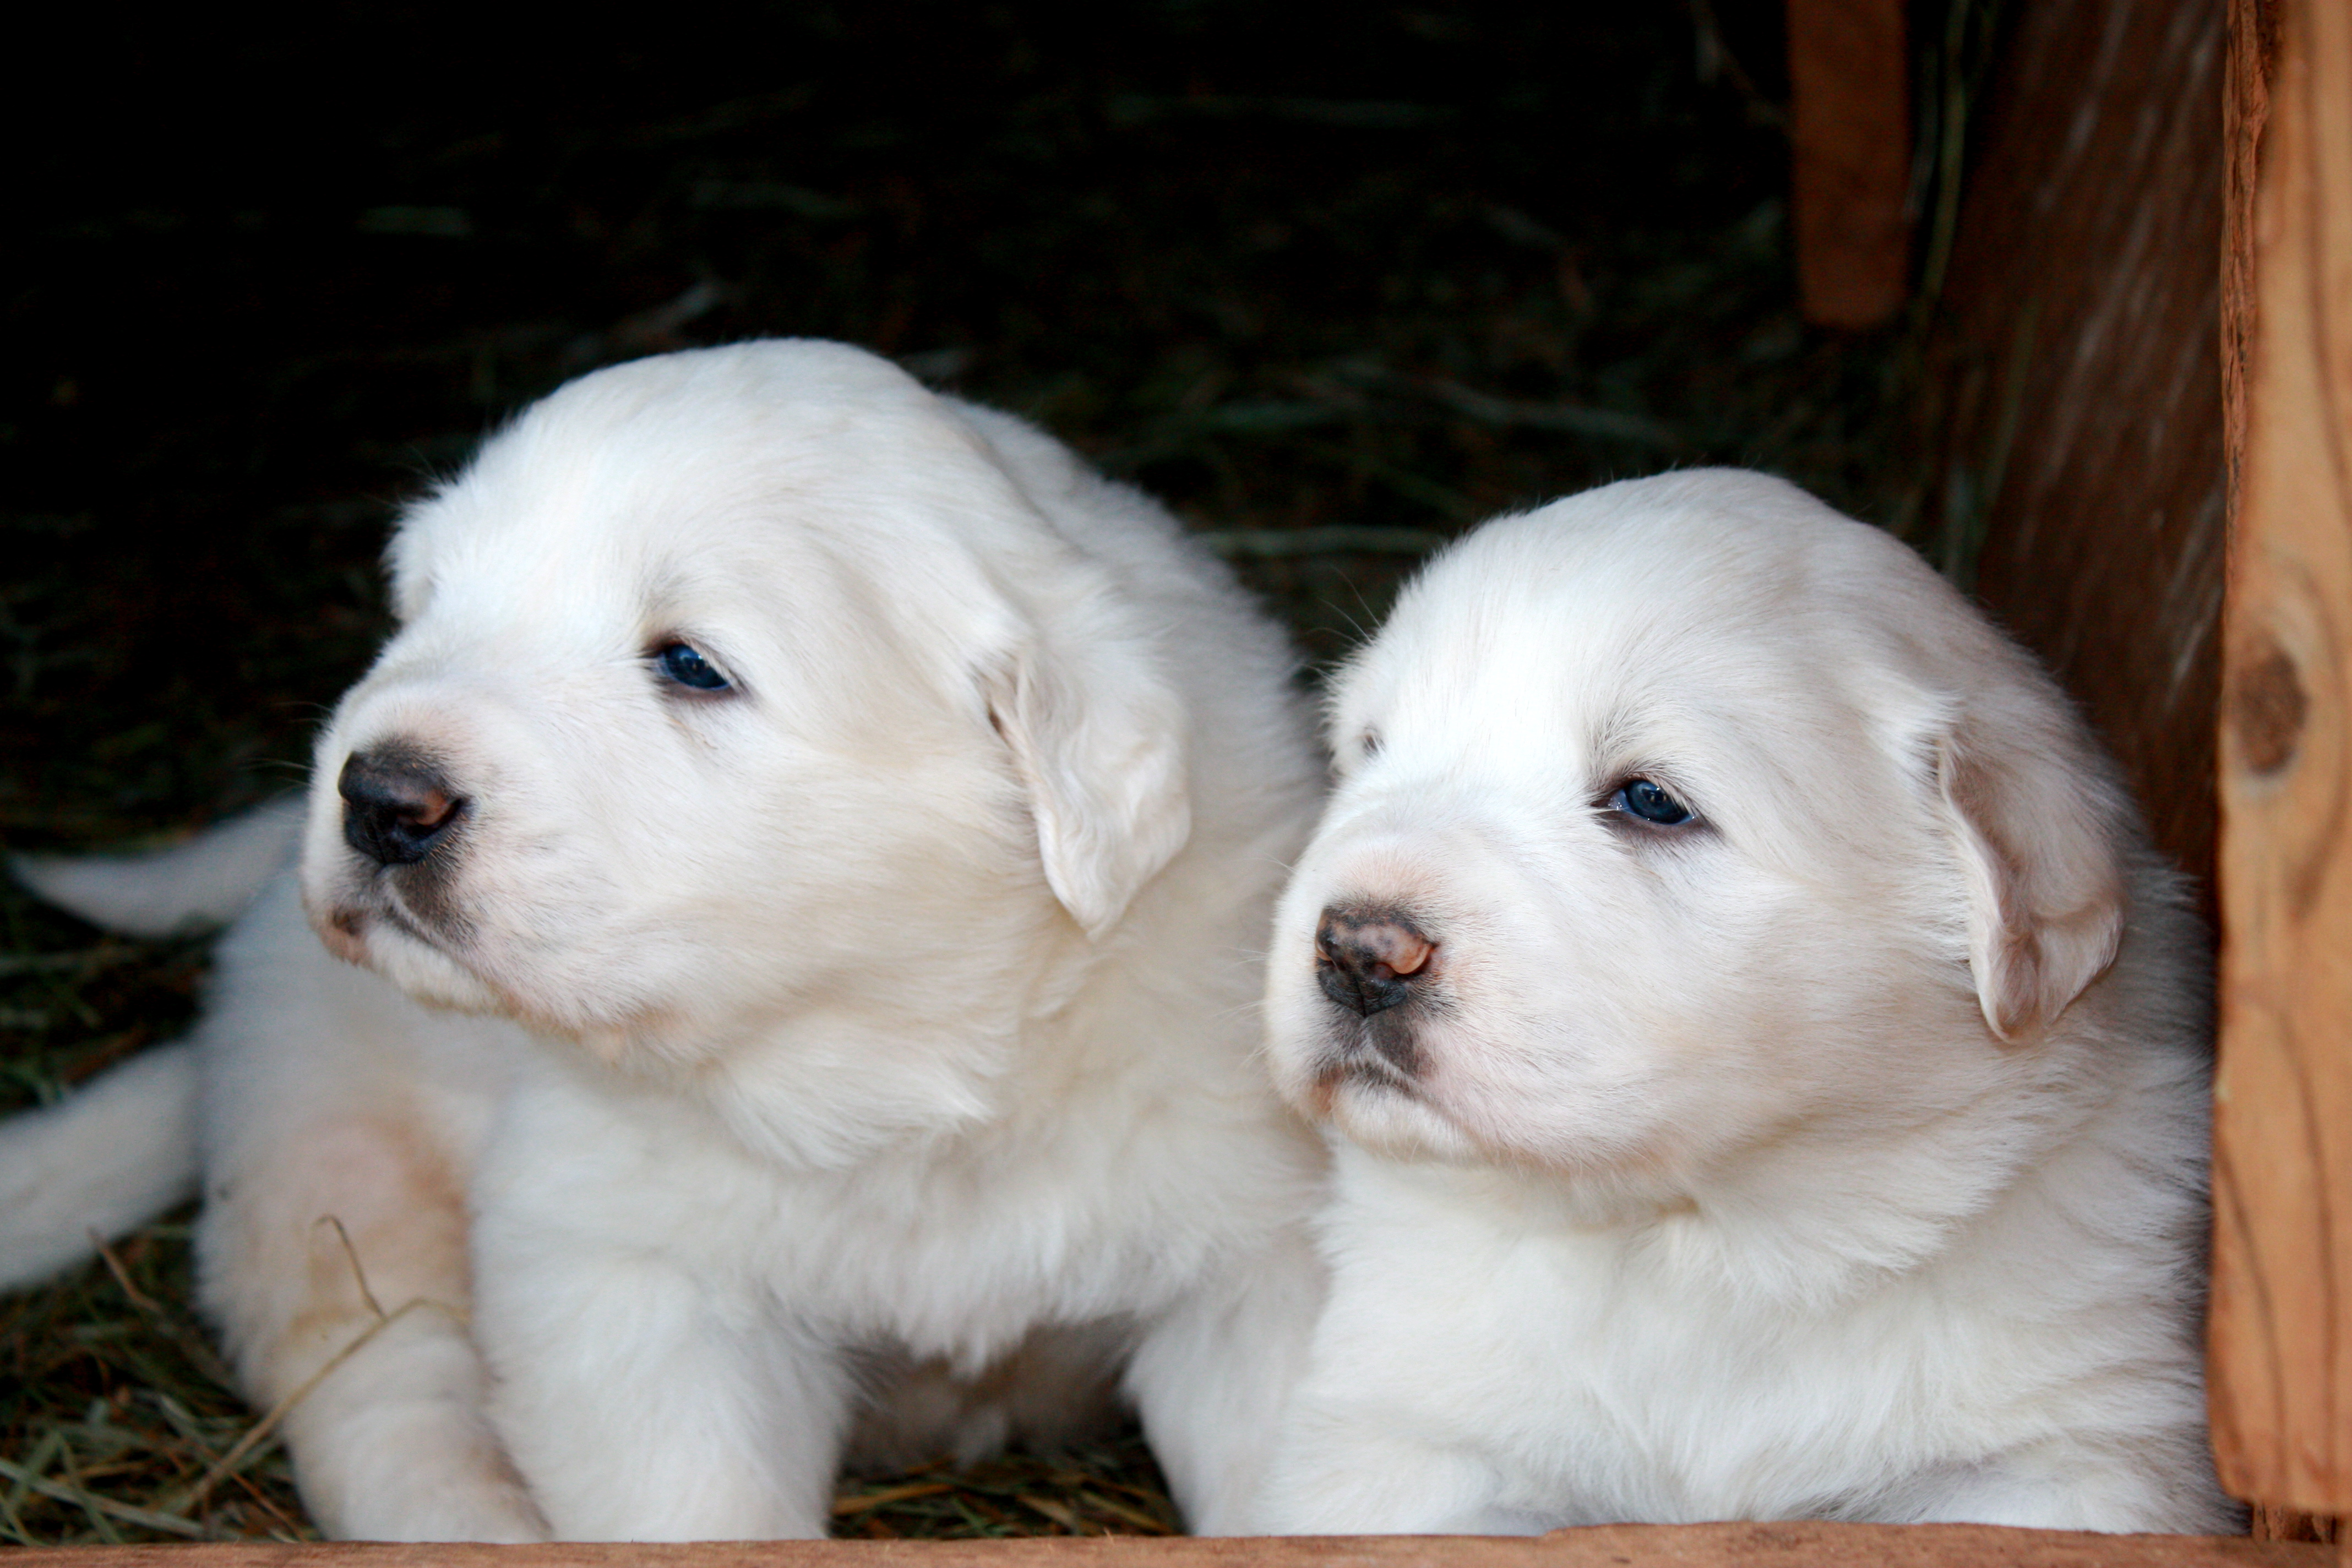 Two Great Pyrenees puppies wallpaper